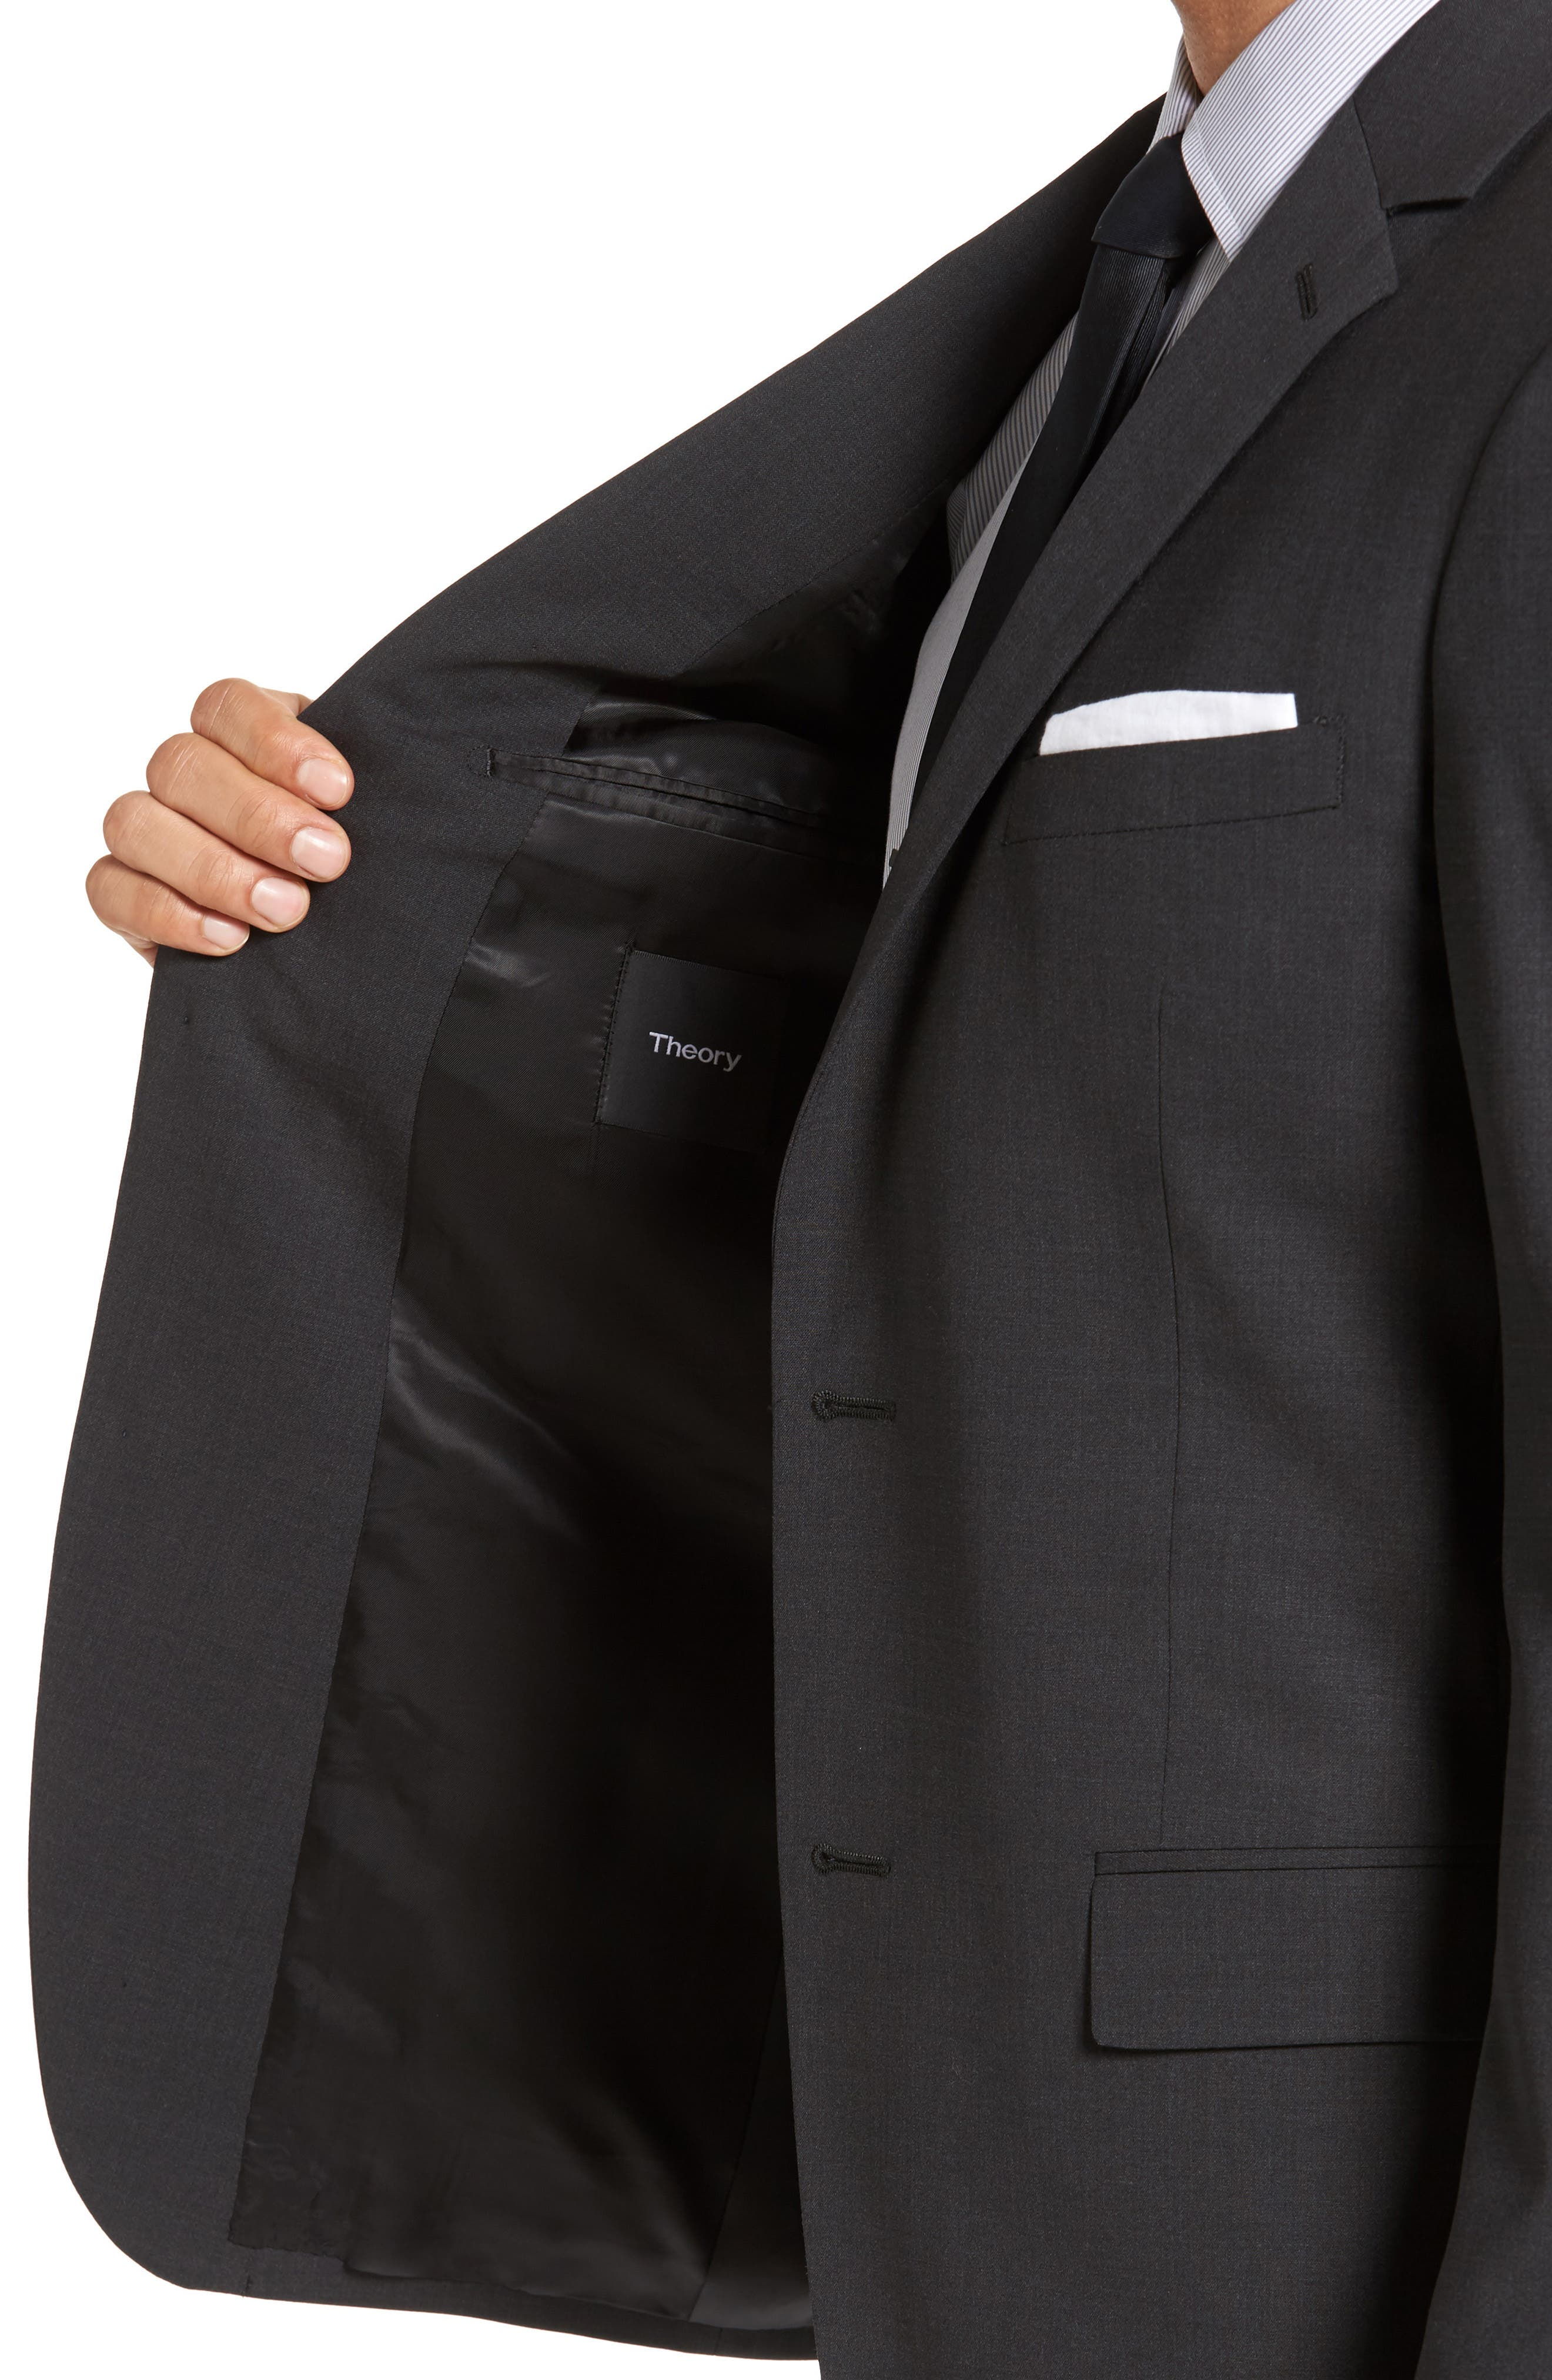 Wellar New Tailor 1 Trim Fit Stretch Wool Sport Coat,                             Alternate thumbnail 4, color,                             DARK CHARCOAL